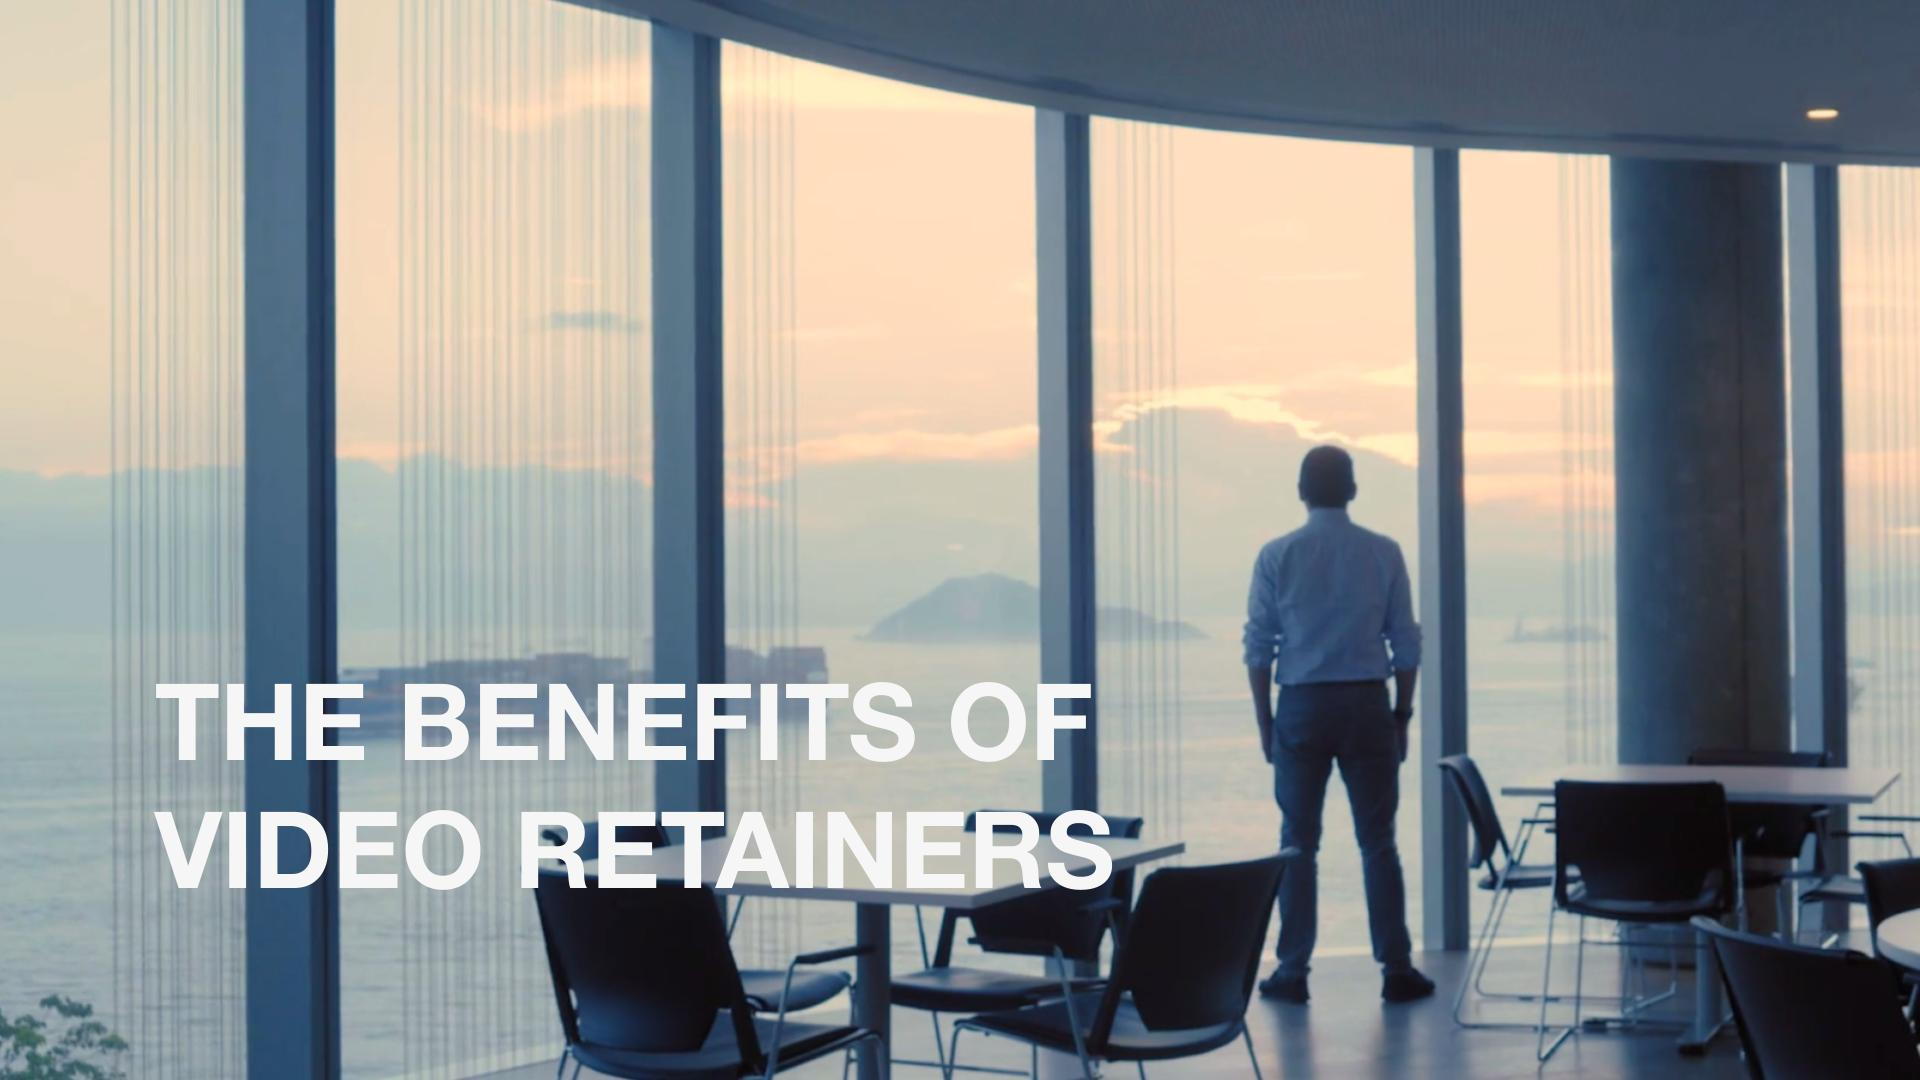 The Benefits of video retainers